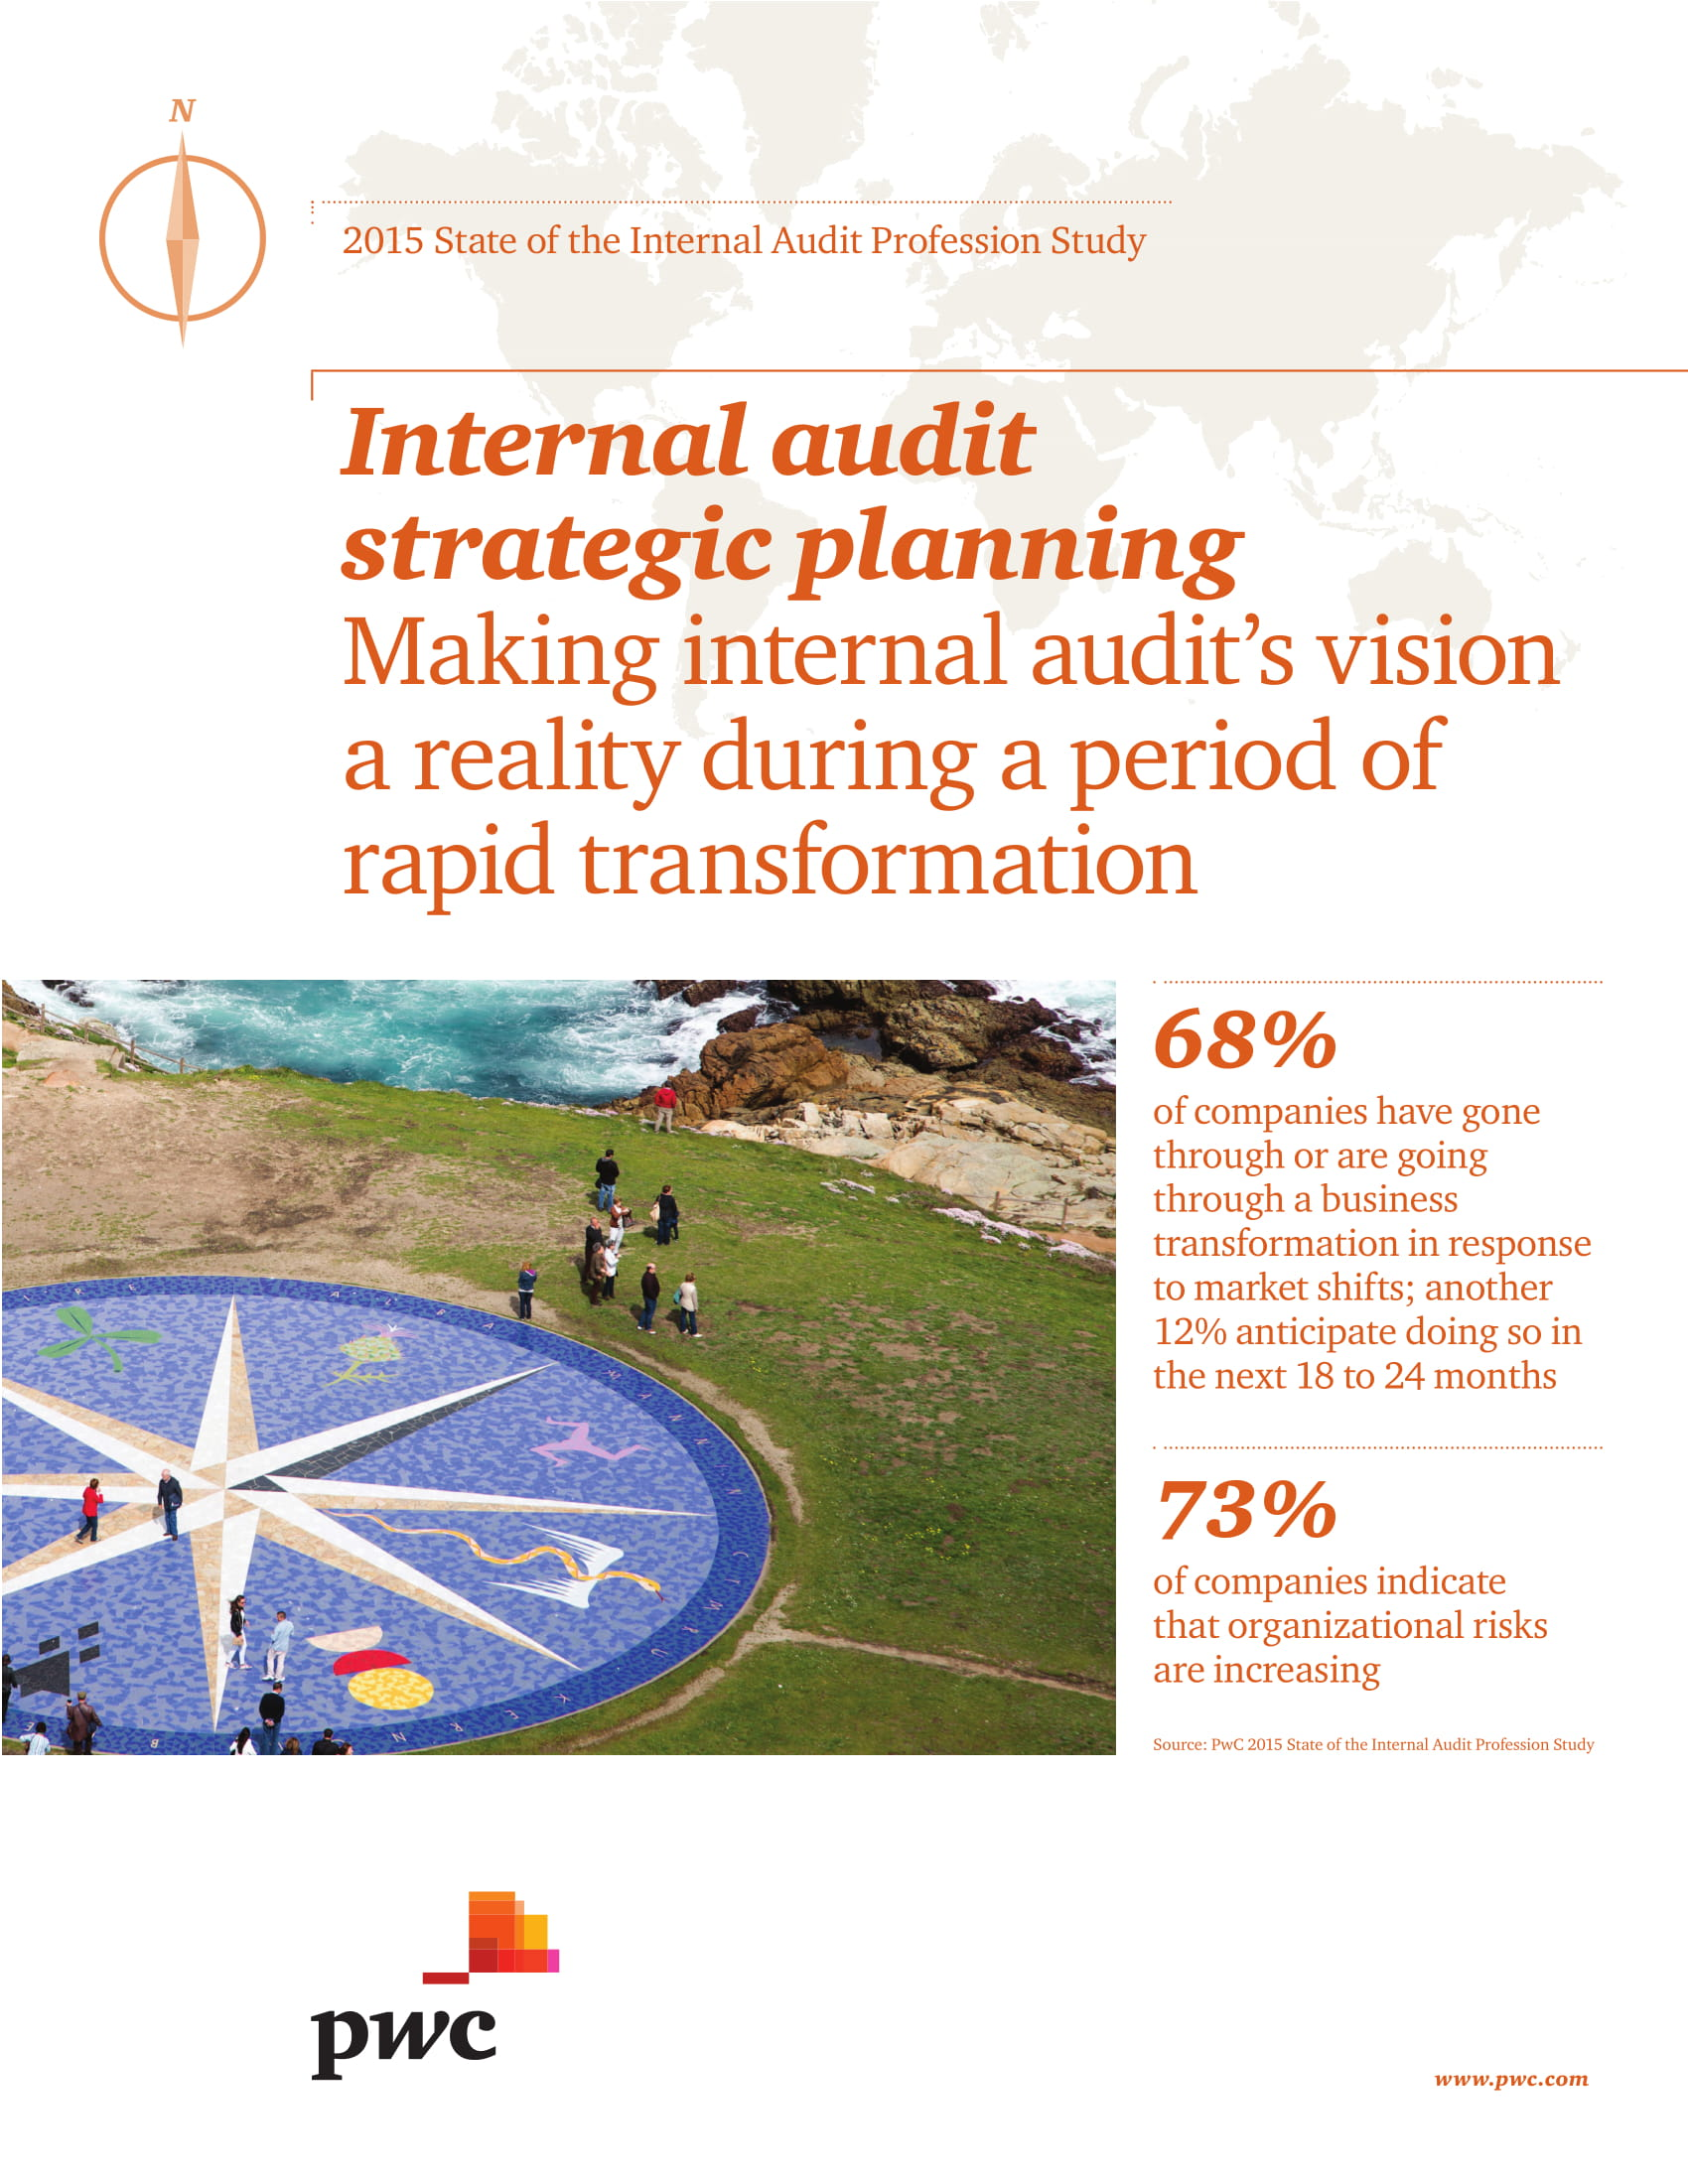 internal audit swot analysis and strategic planning example